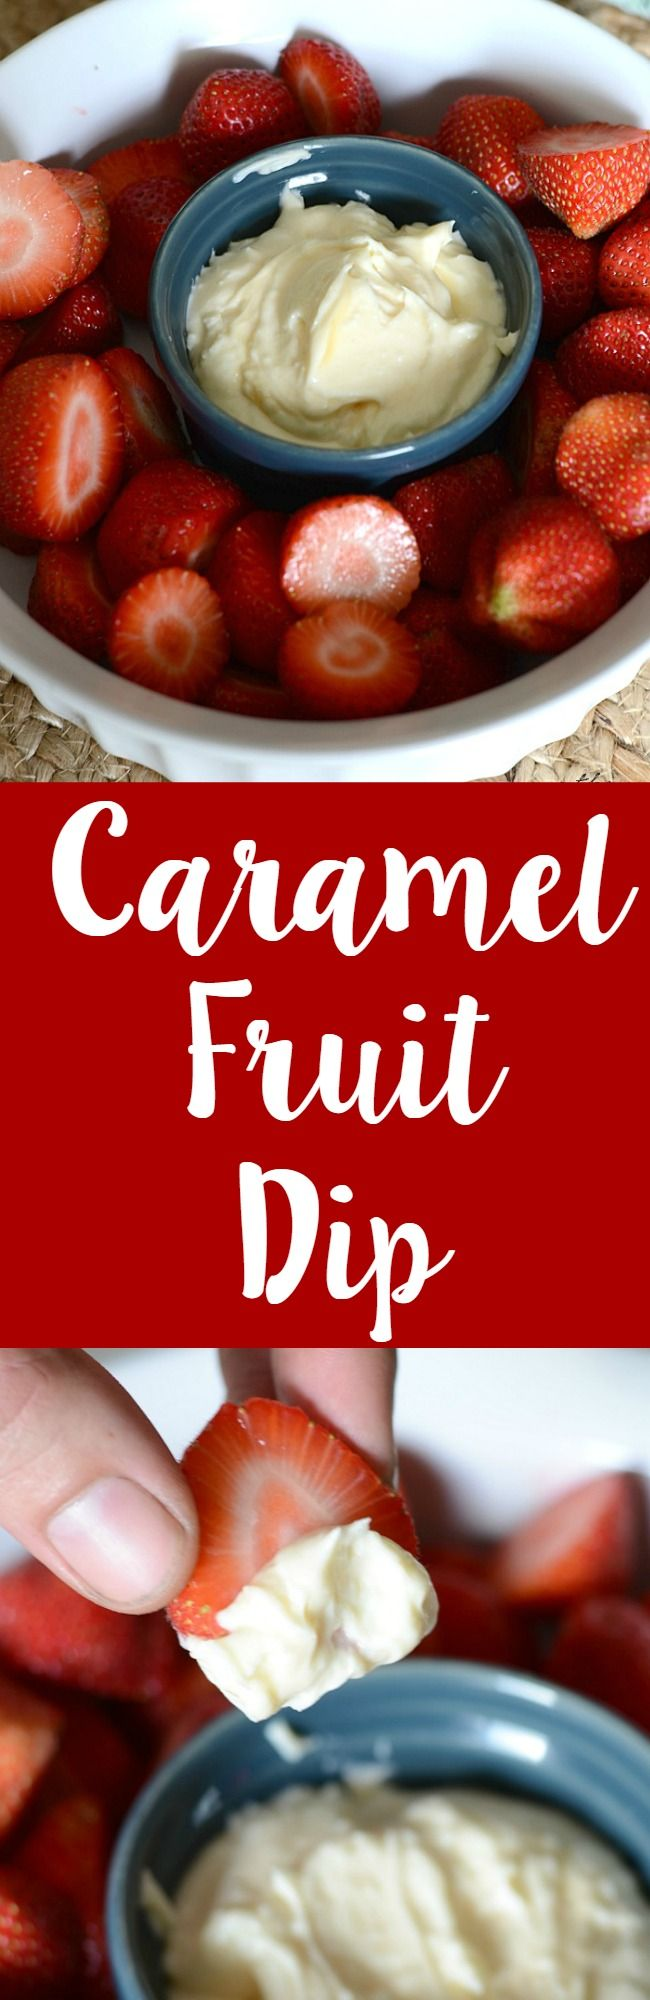 Easy to make caramel fruit dip recipe